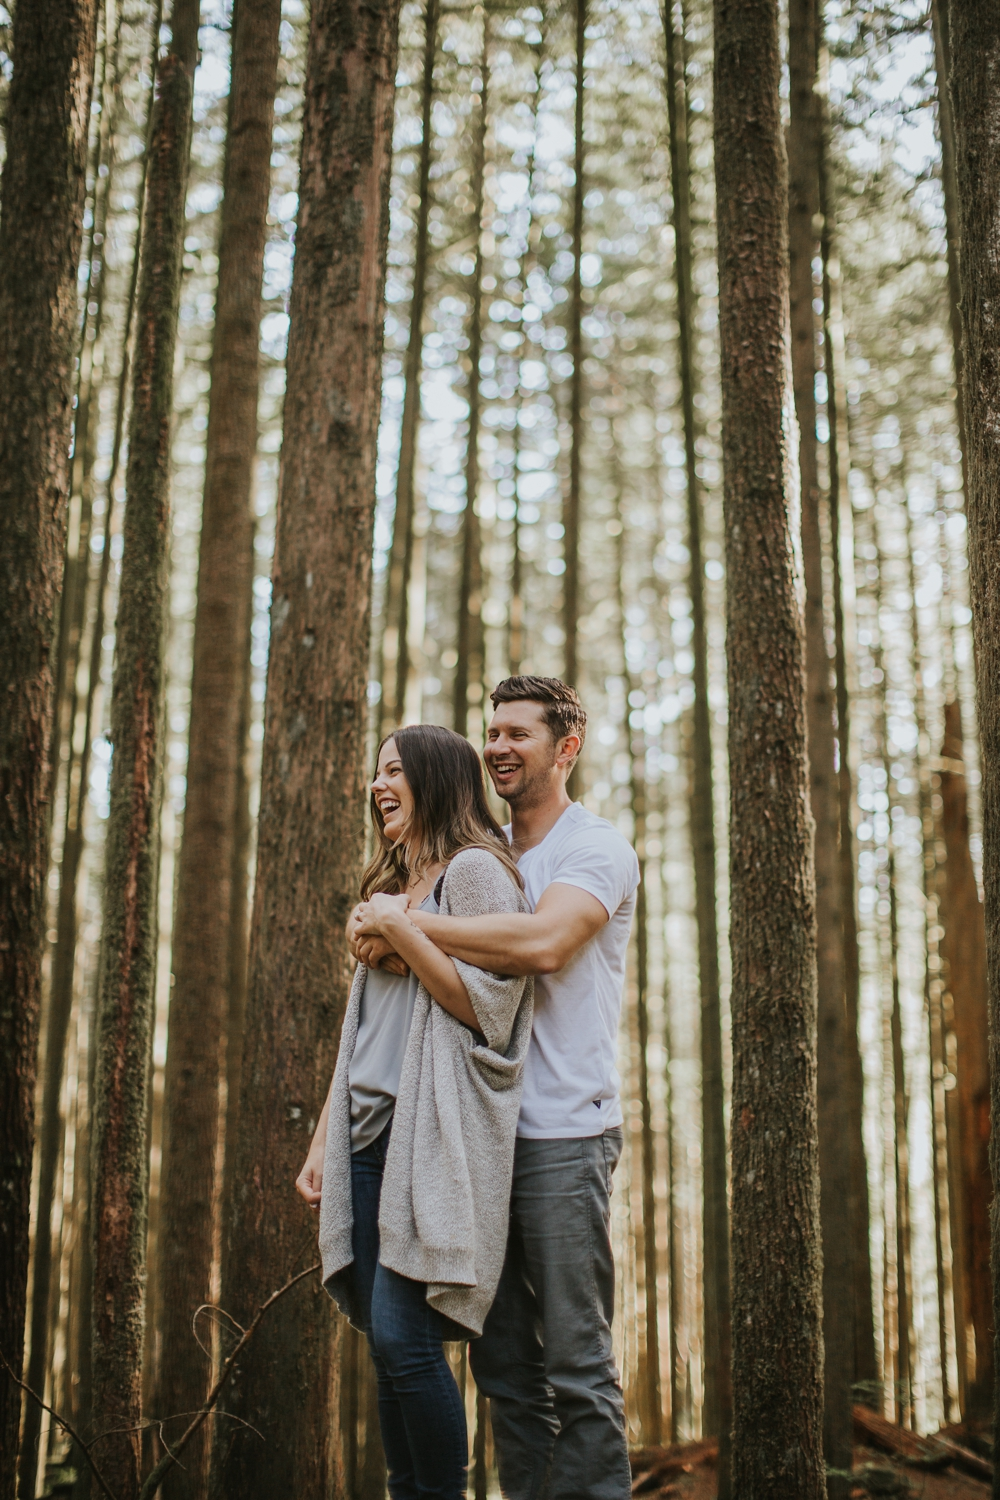 Danielle-Kevin-Engagement-Danaea-Li-Photography-Forest-0032.jpg